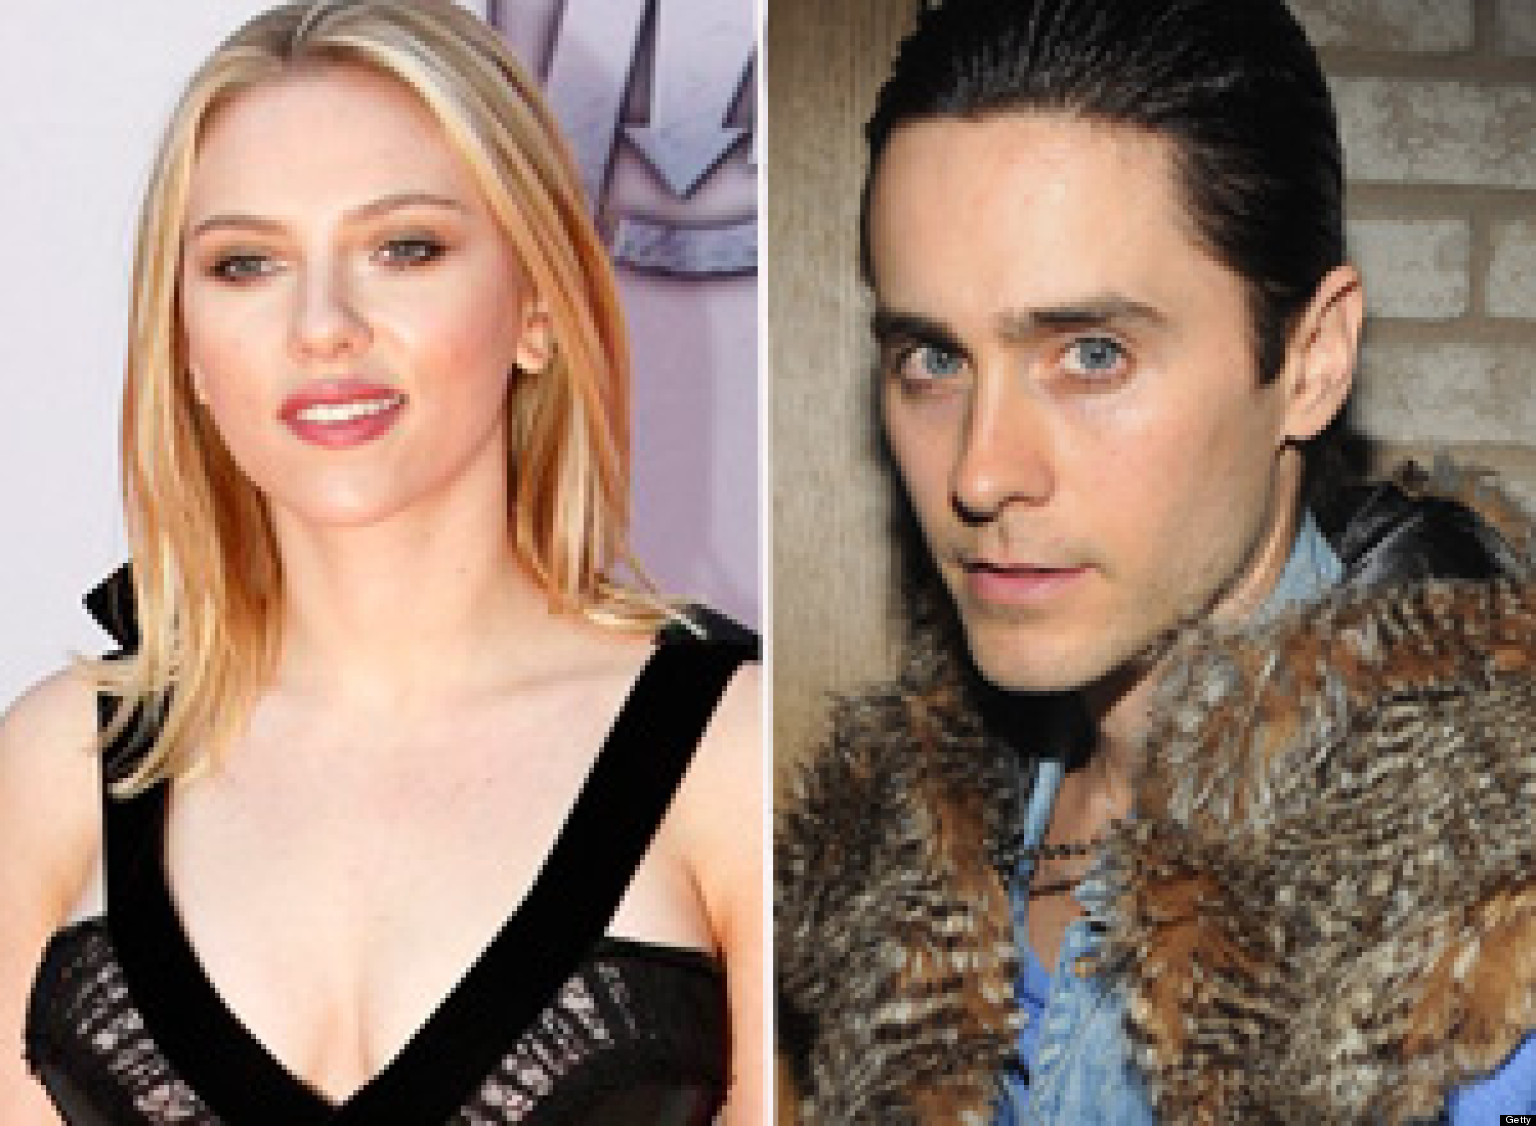 jared leto and scarlett johansson dating 2012